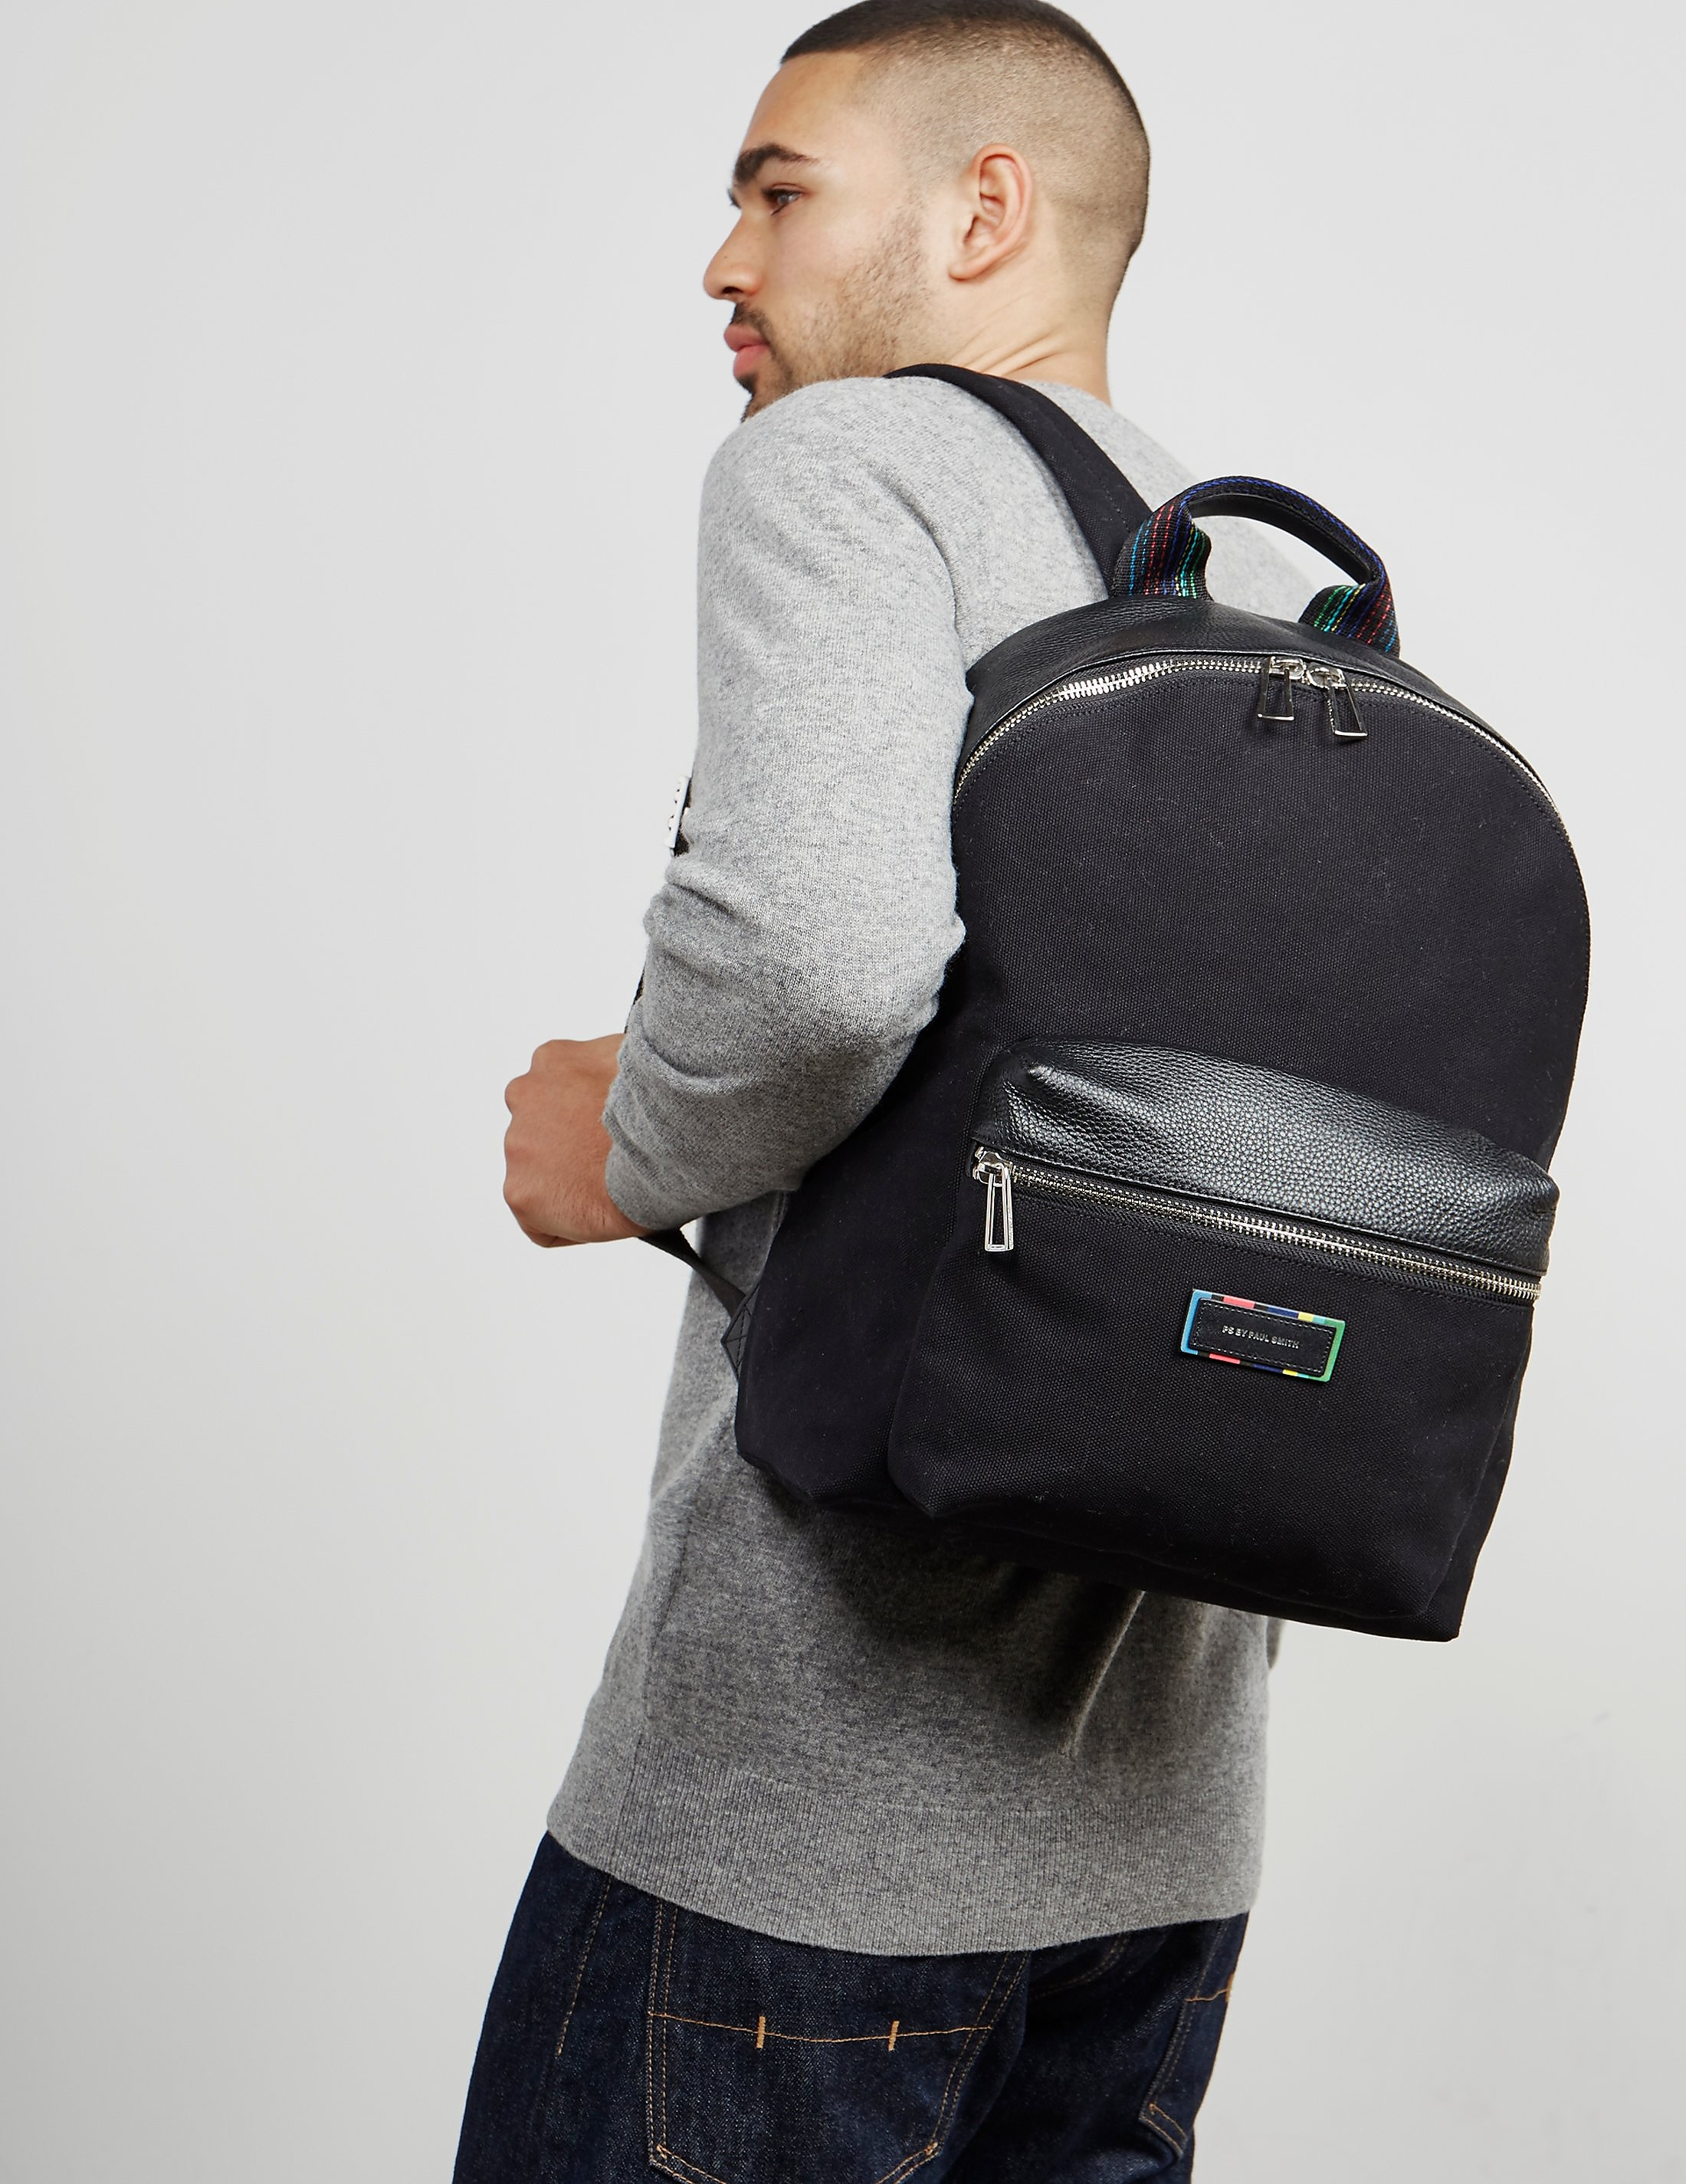 Paul Smith Leather Backpack - Online Exclusive